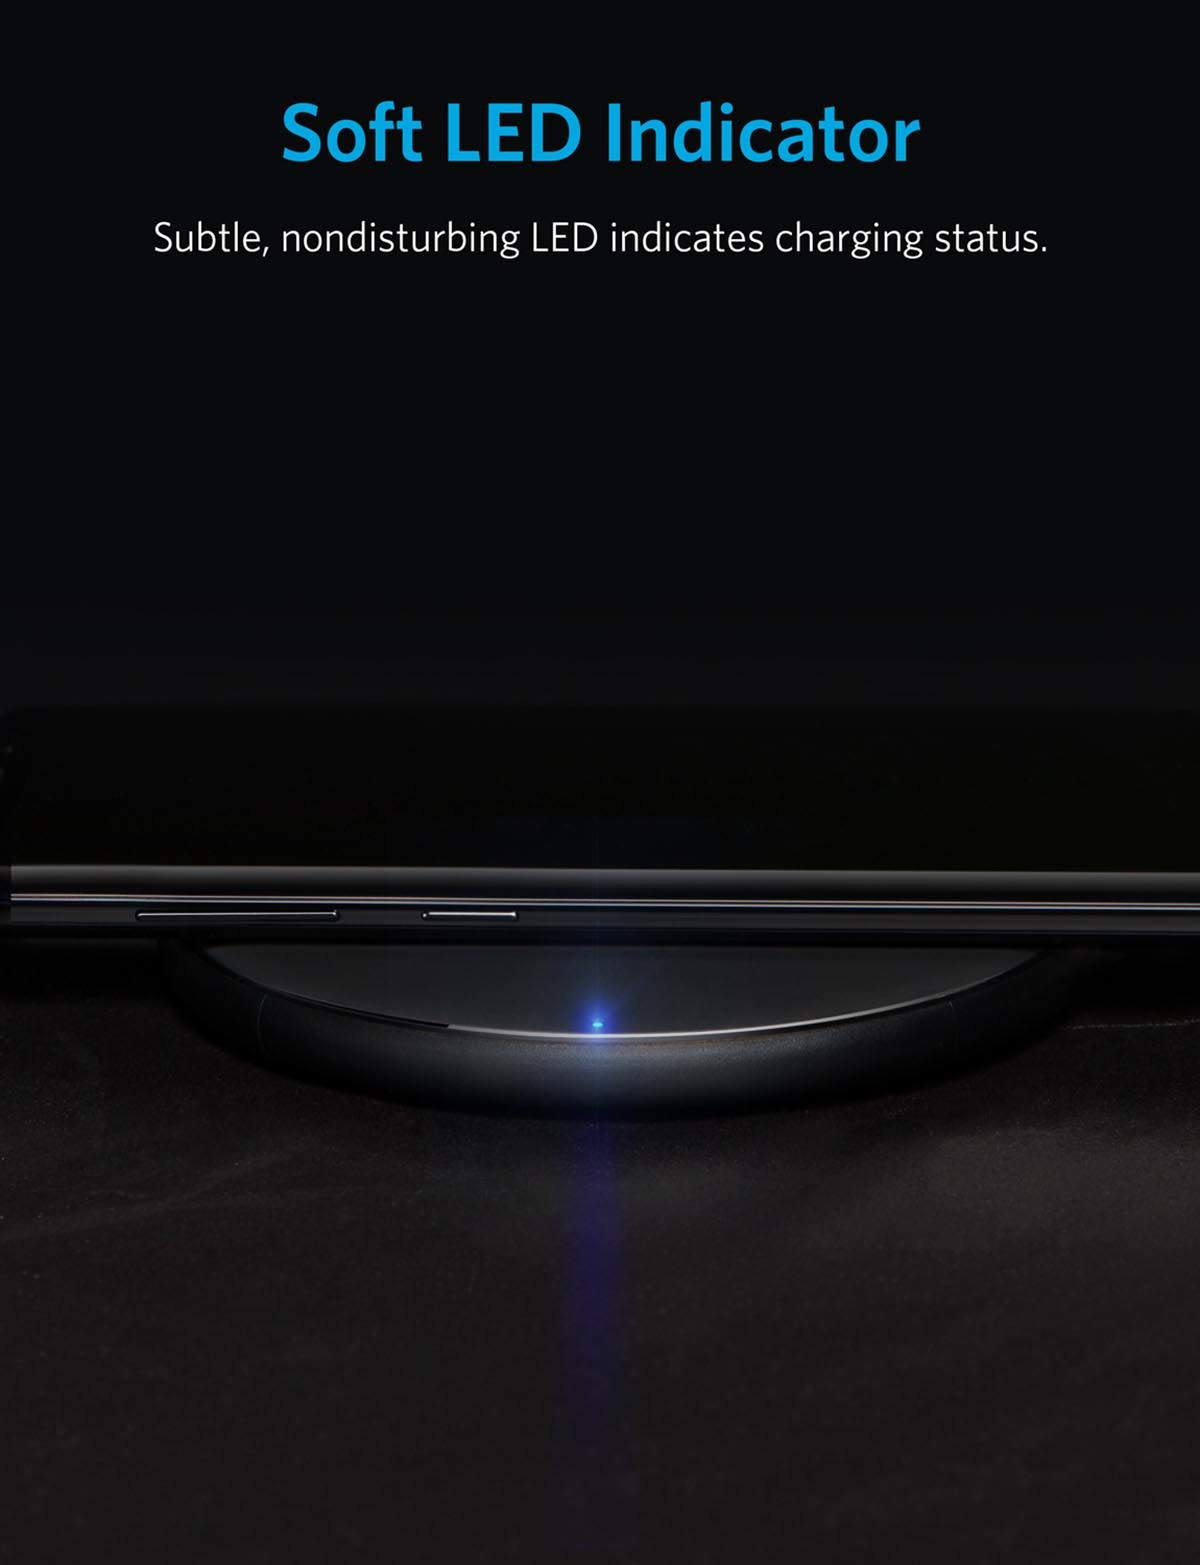 Anker Wireless Charger, Qi-Certified Ultra-Slim Wireless Charger for iPhone X, iPhone 8/8 Plus, Samsung S9/S9+/S8/S8+/S7/Note 8 and More, PowerPort Wireless 5 Pad (AC Adapter Not Included)